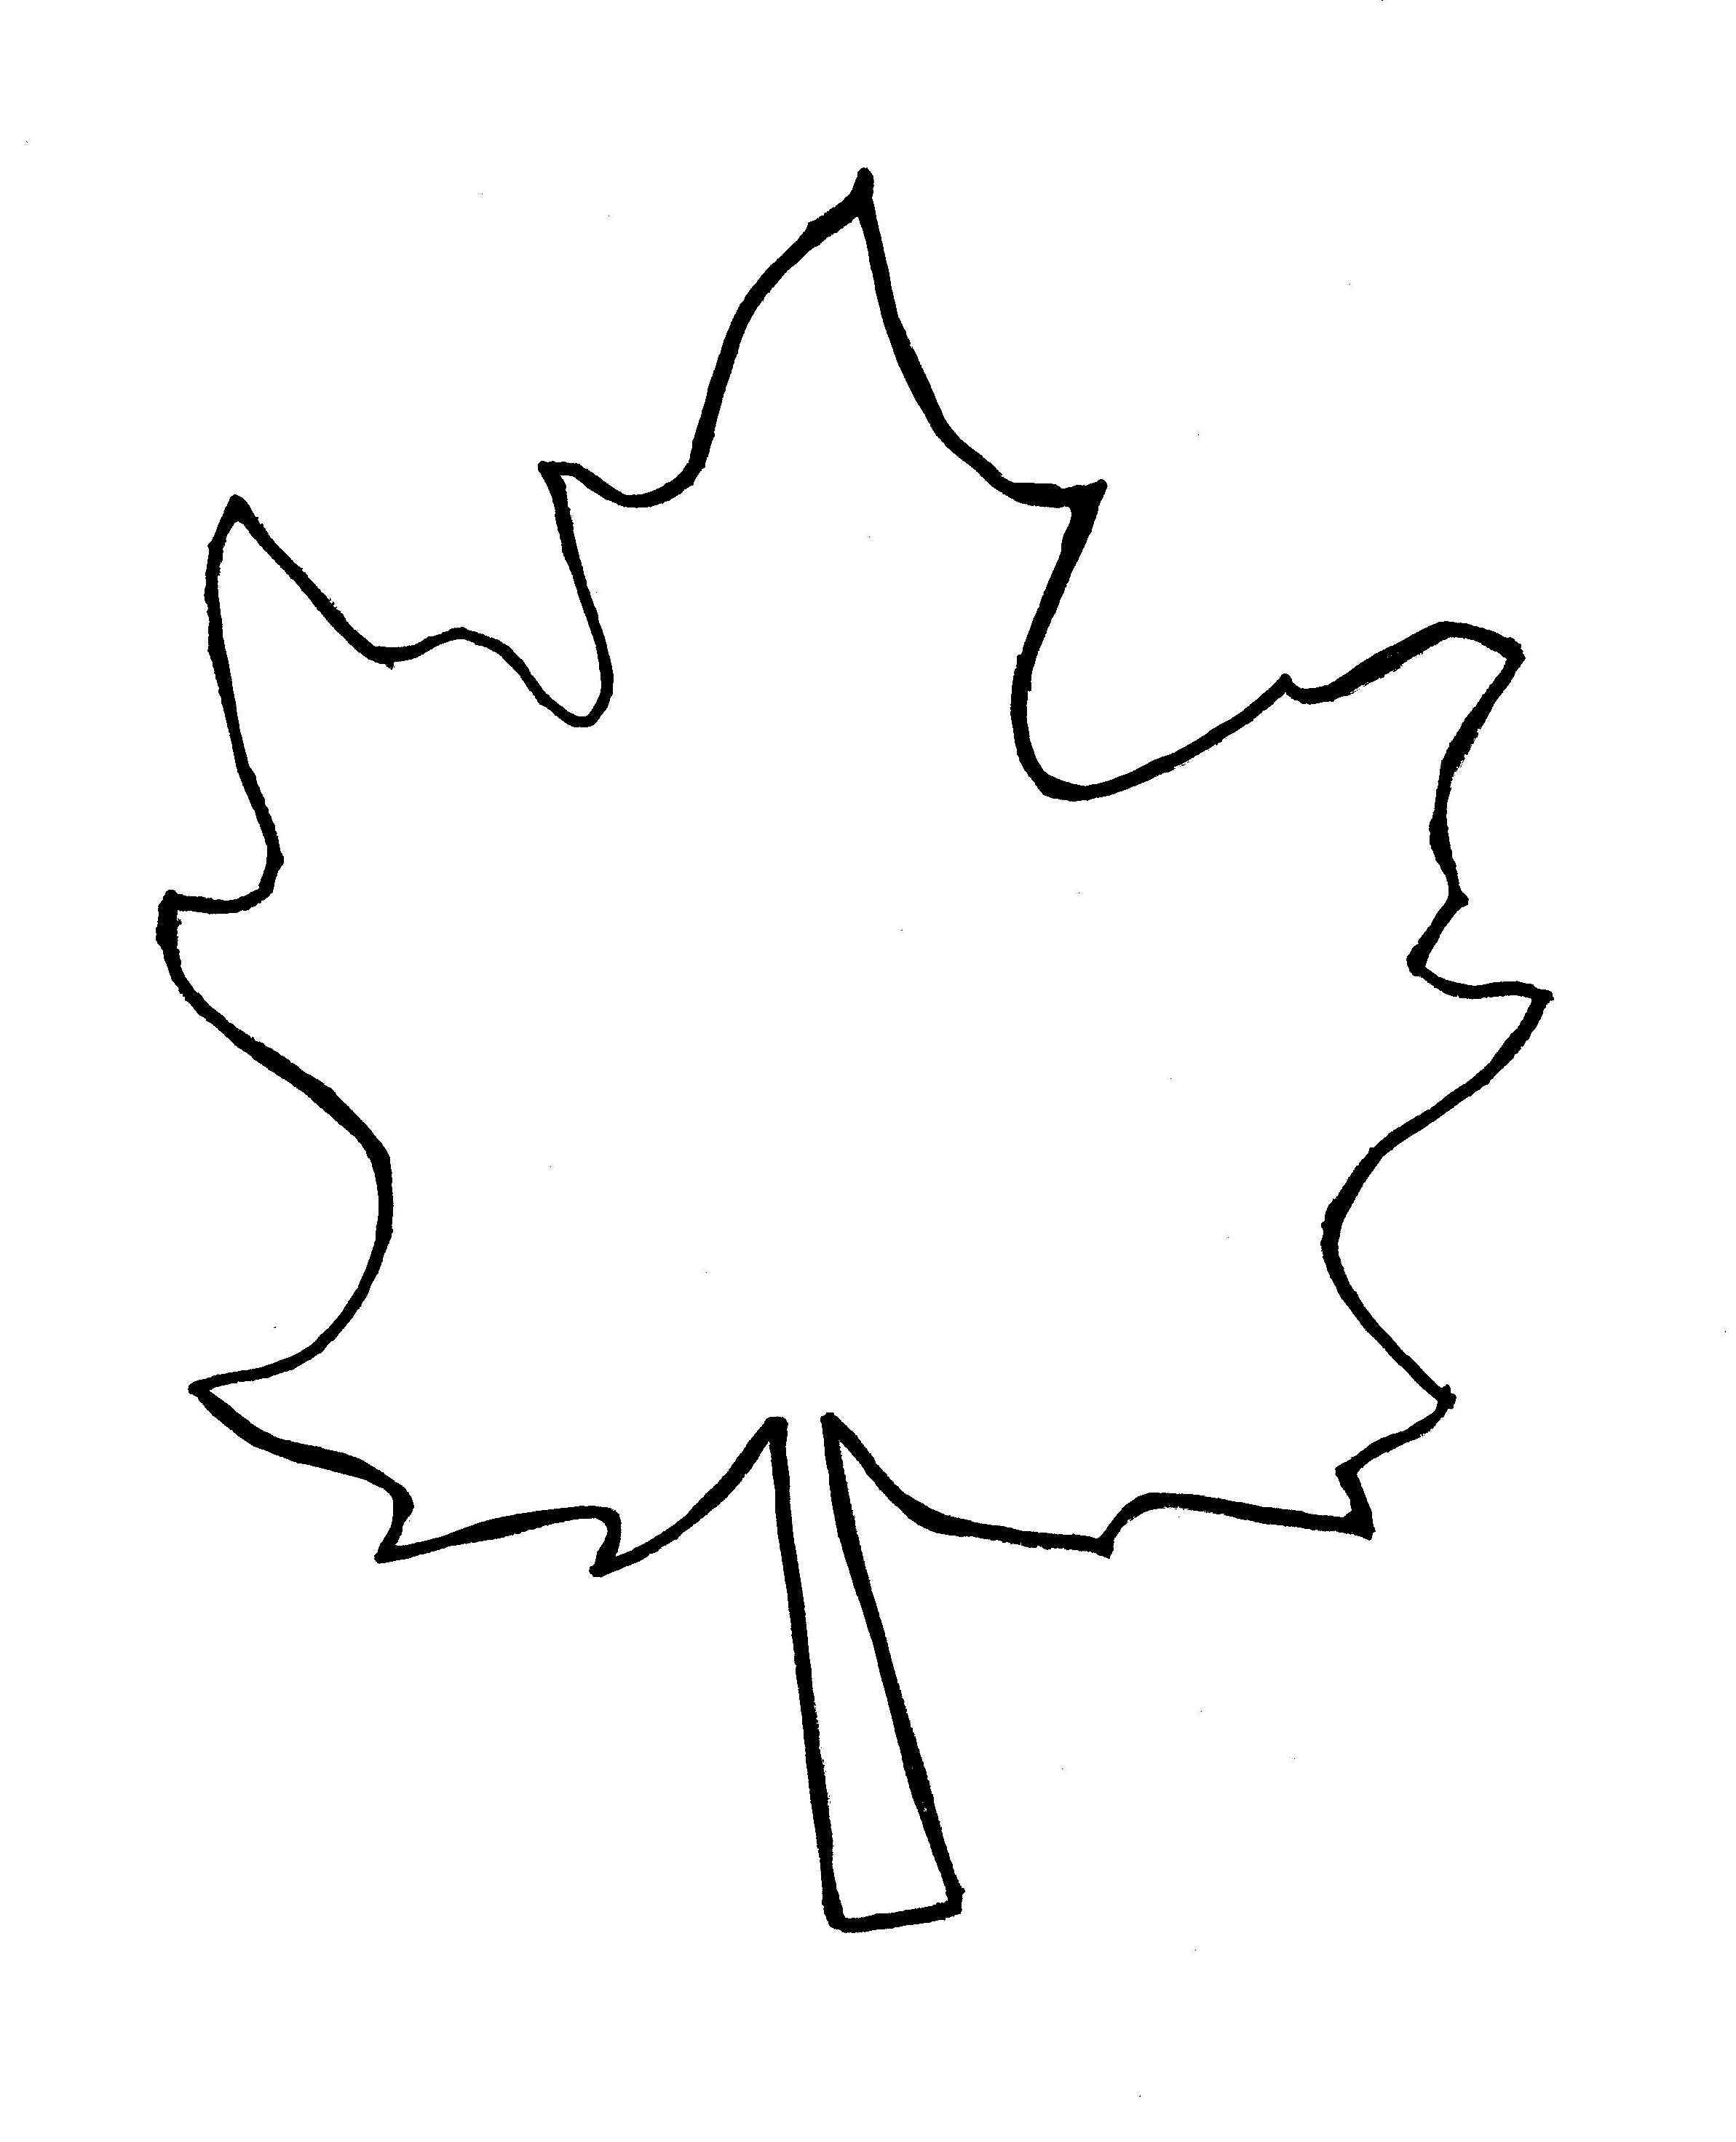 Free Autumn Leaf Outline, Download Free Clip Art, Free Clip.